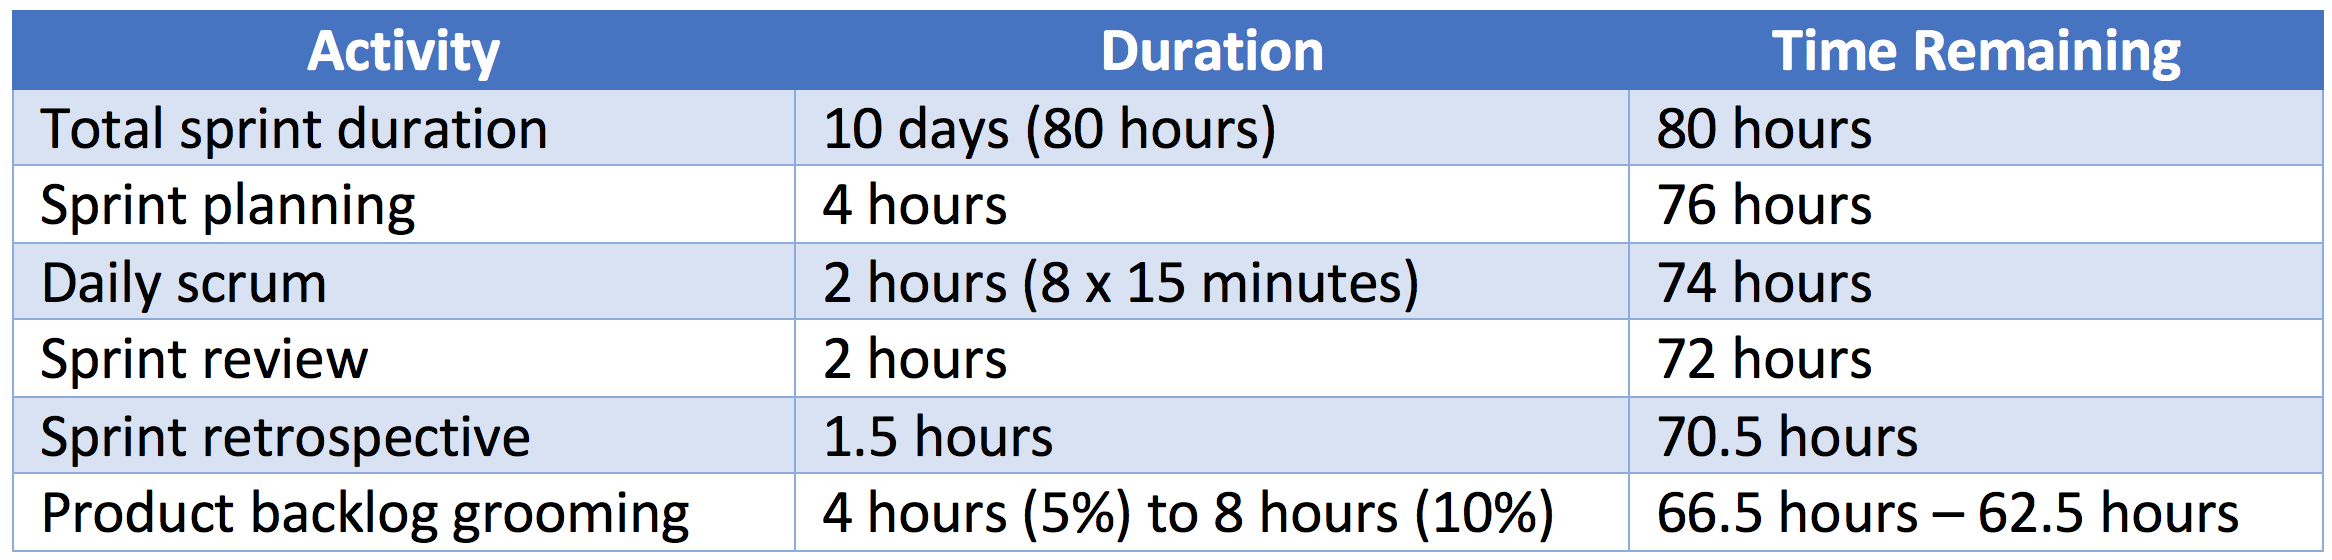 Blog: How Much Time Should Teams Spend on Sprint Execution? - Innolution